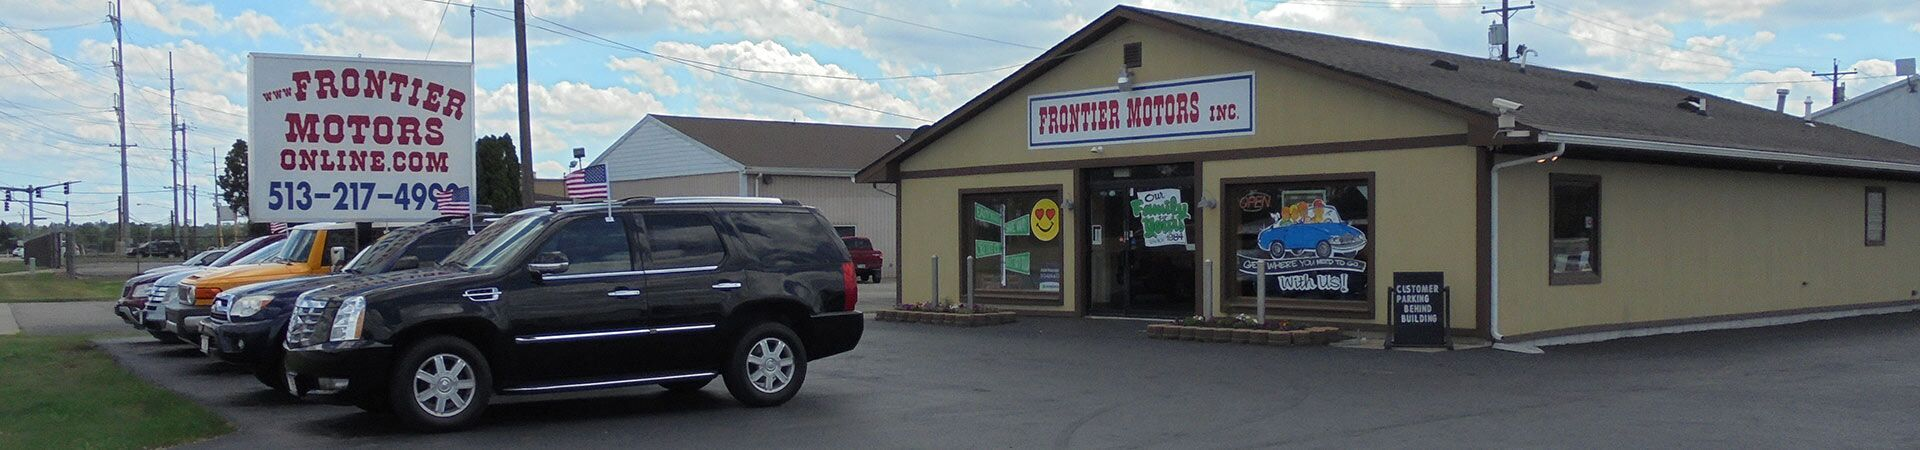 used car dealership middletown oh frontier motors inc